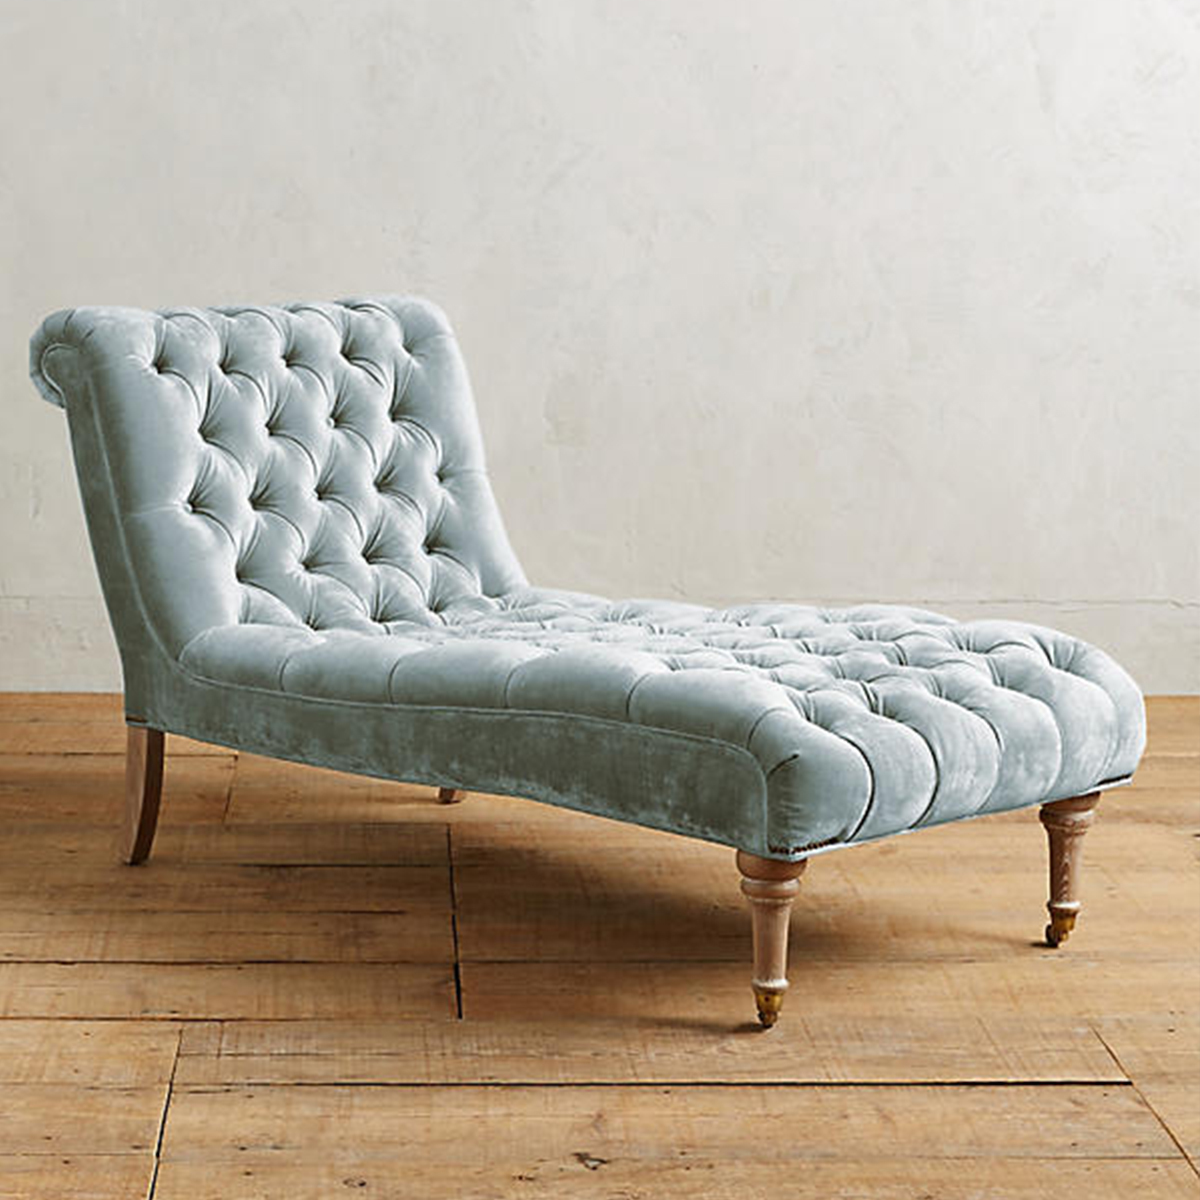 Our Current Obsession These Velvet Furniture Finds Bhg